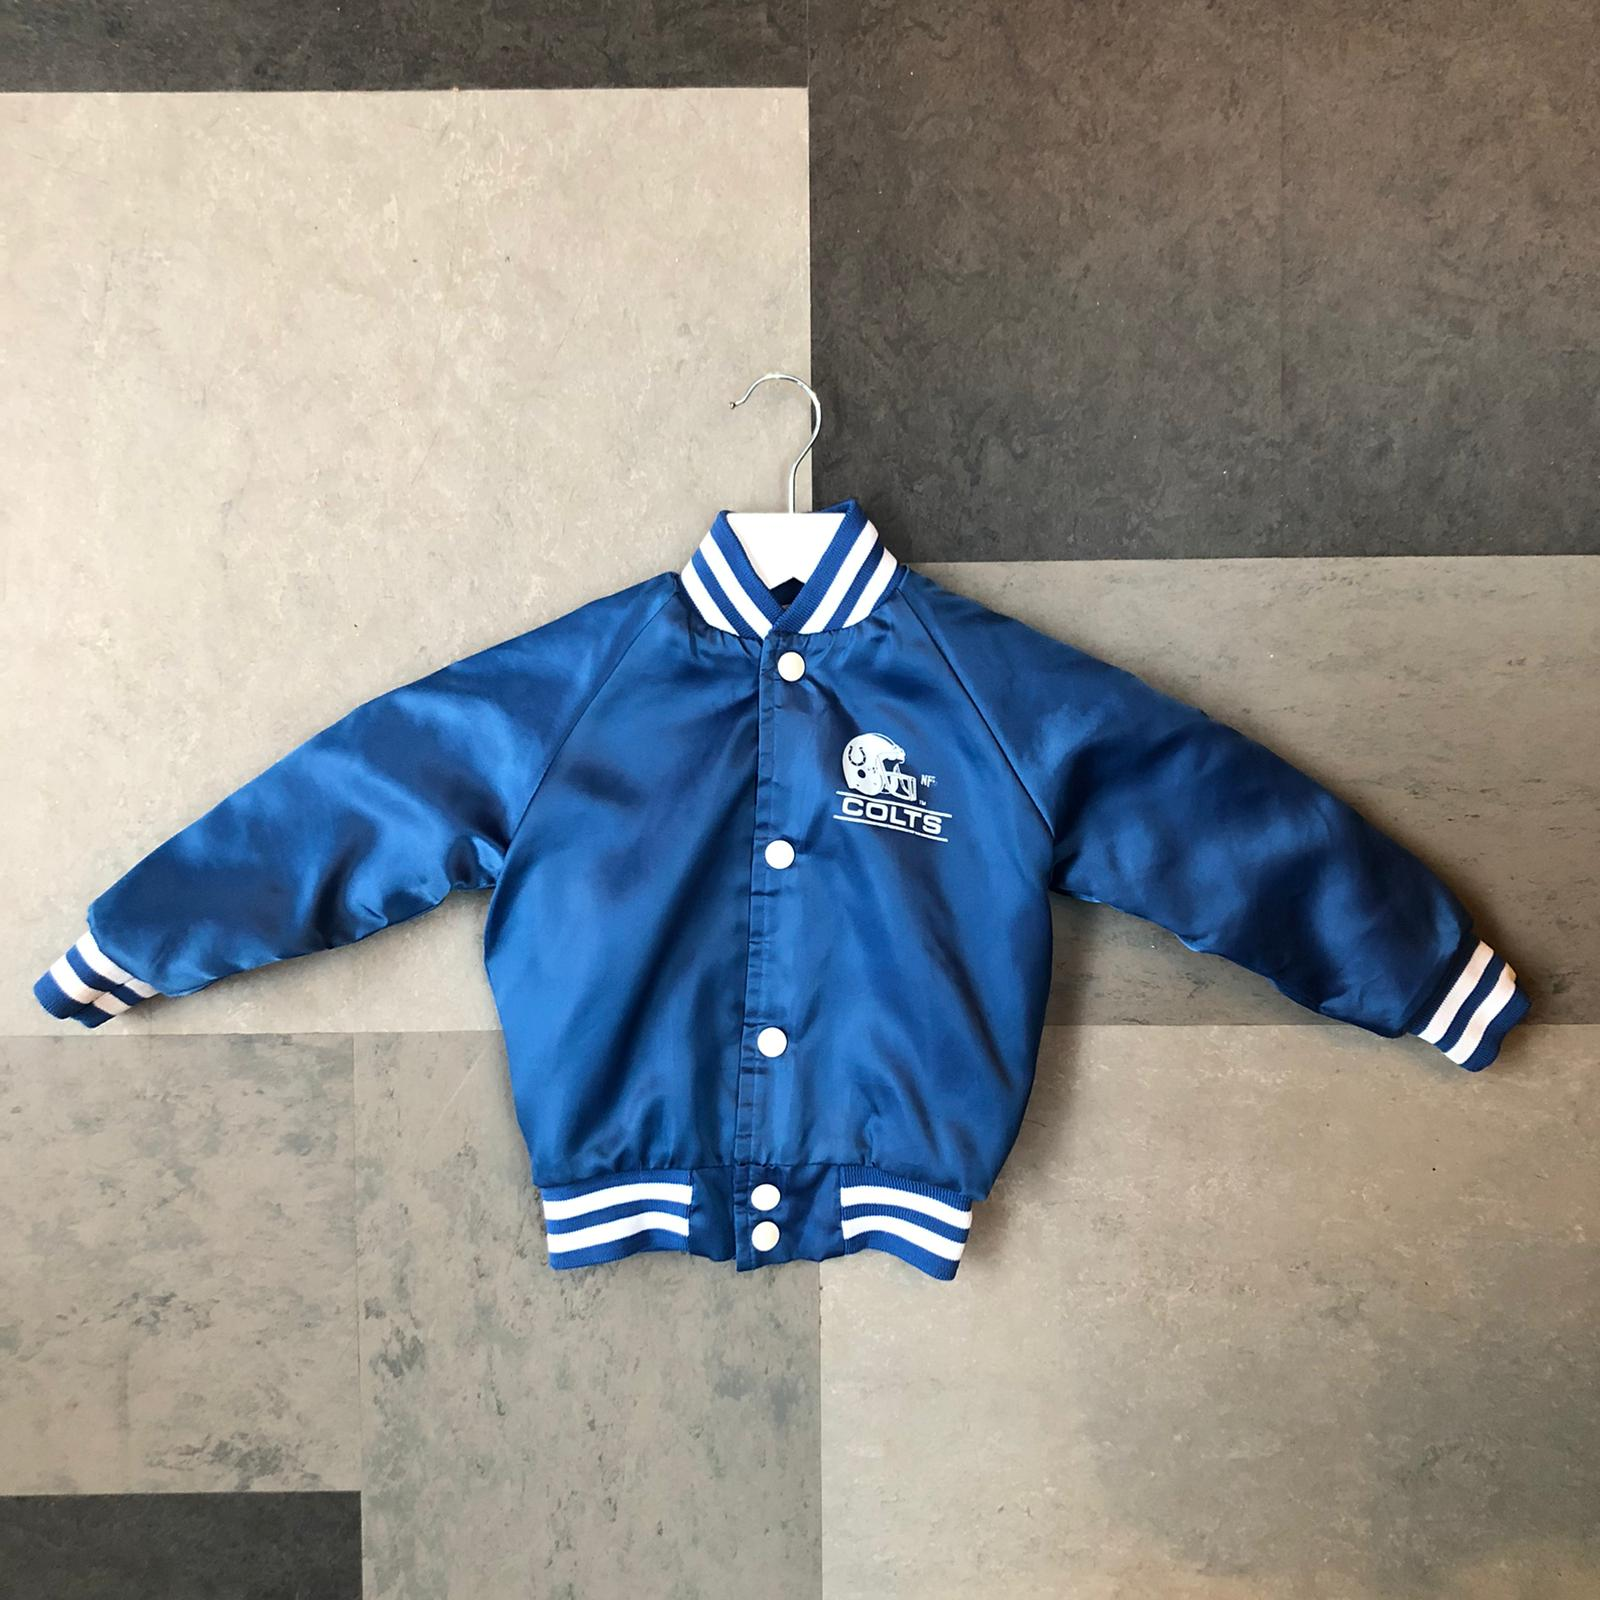 Vintage kids baseball jacket- age 1